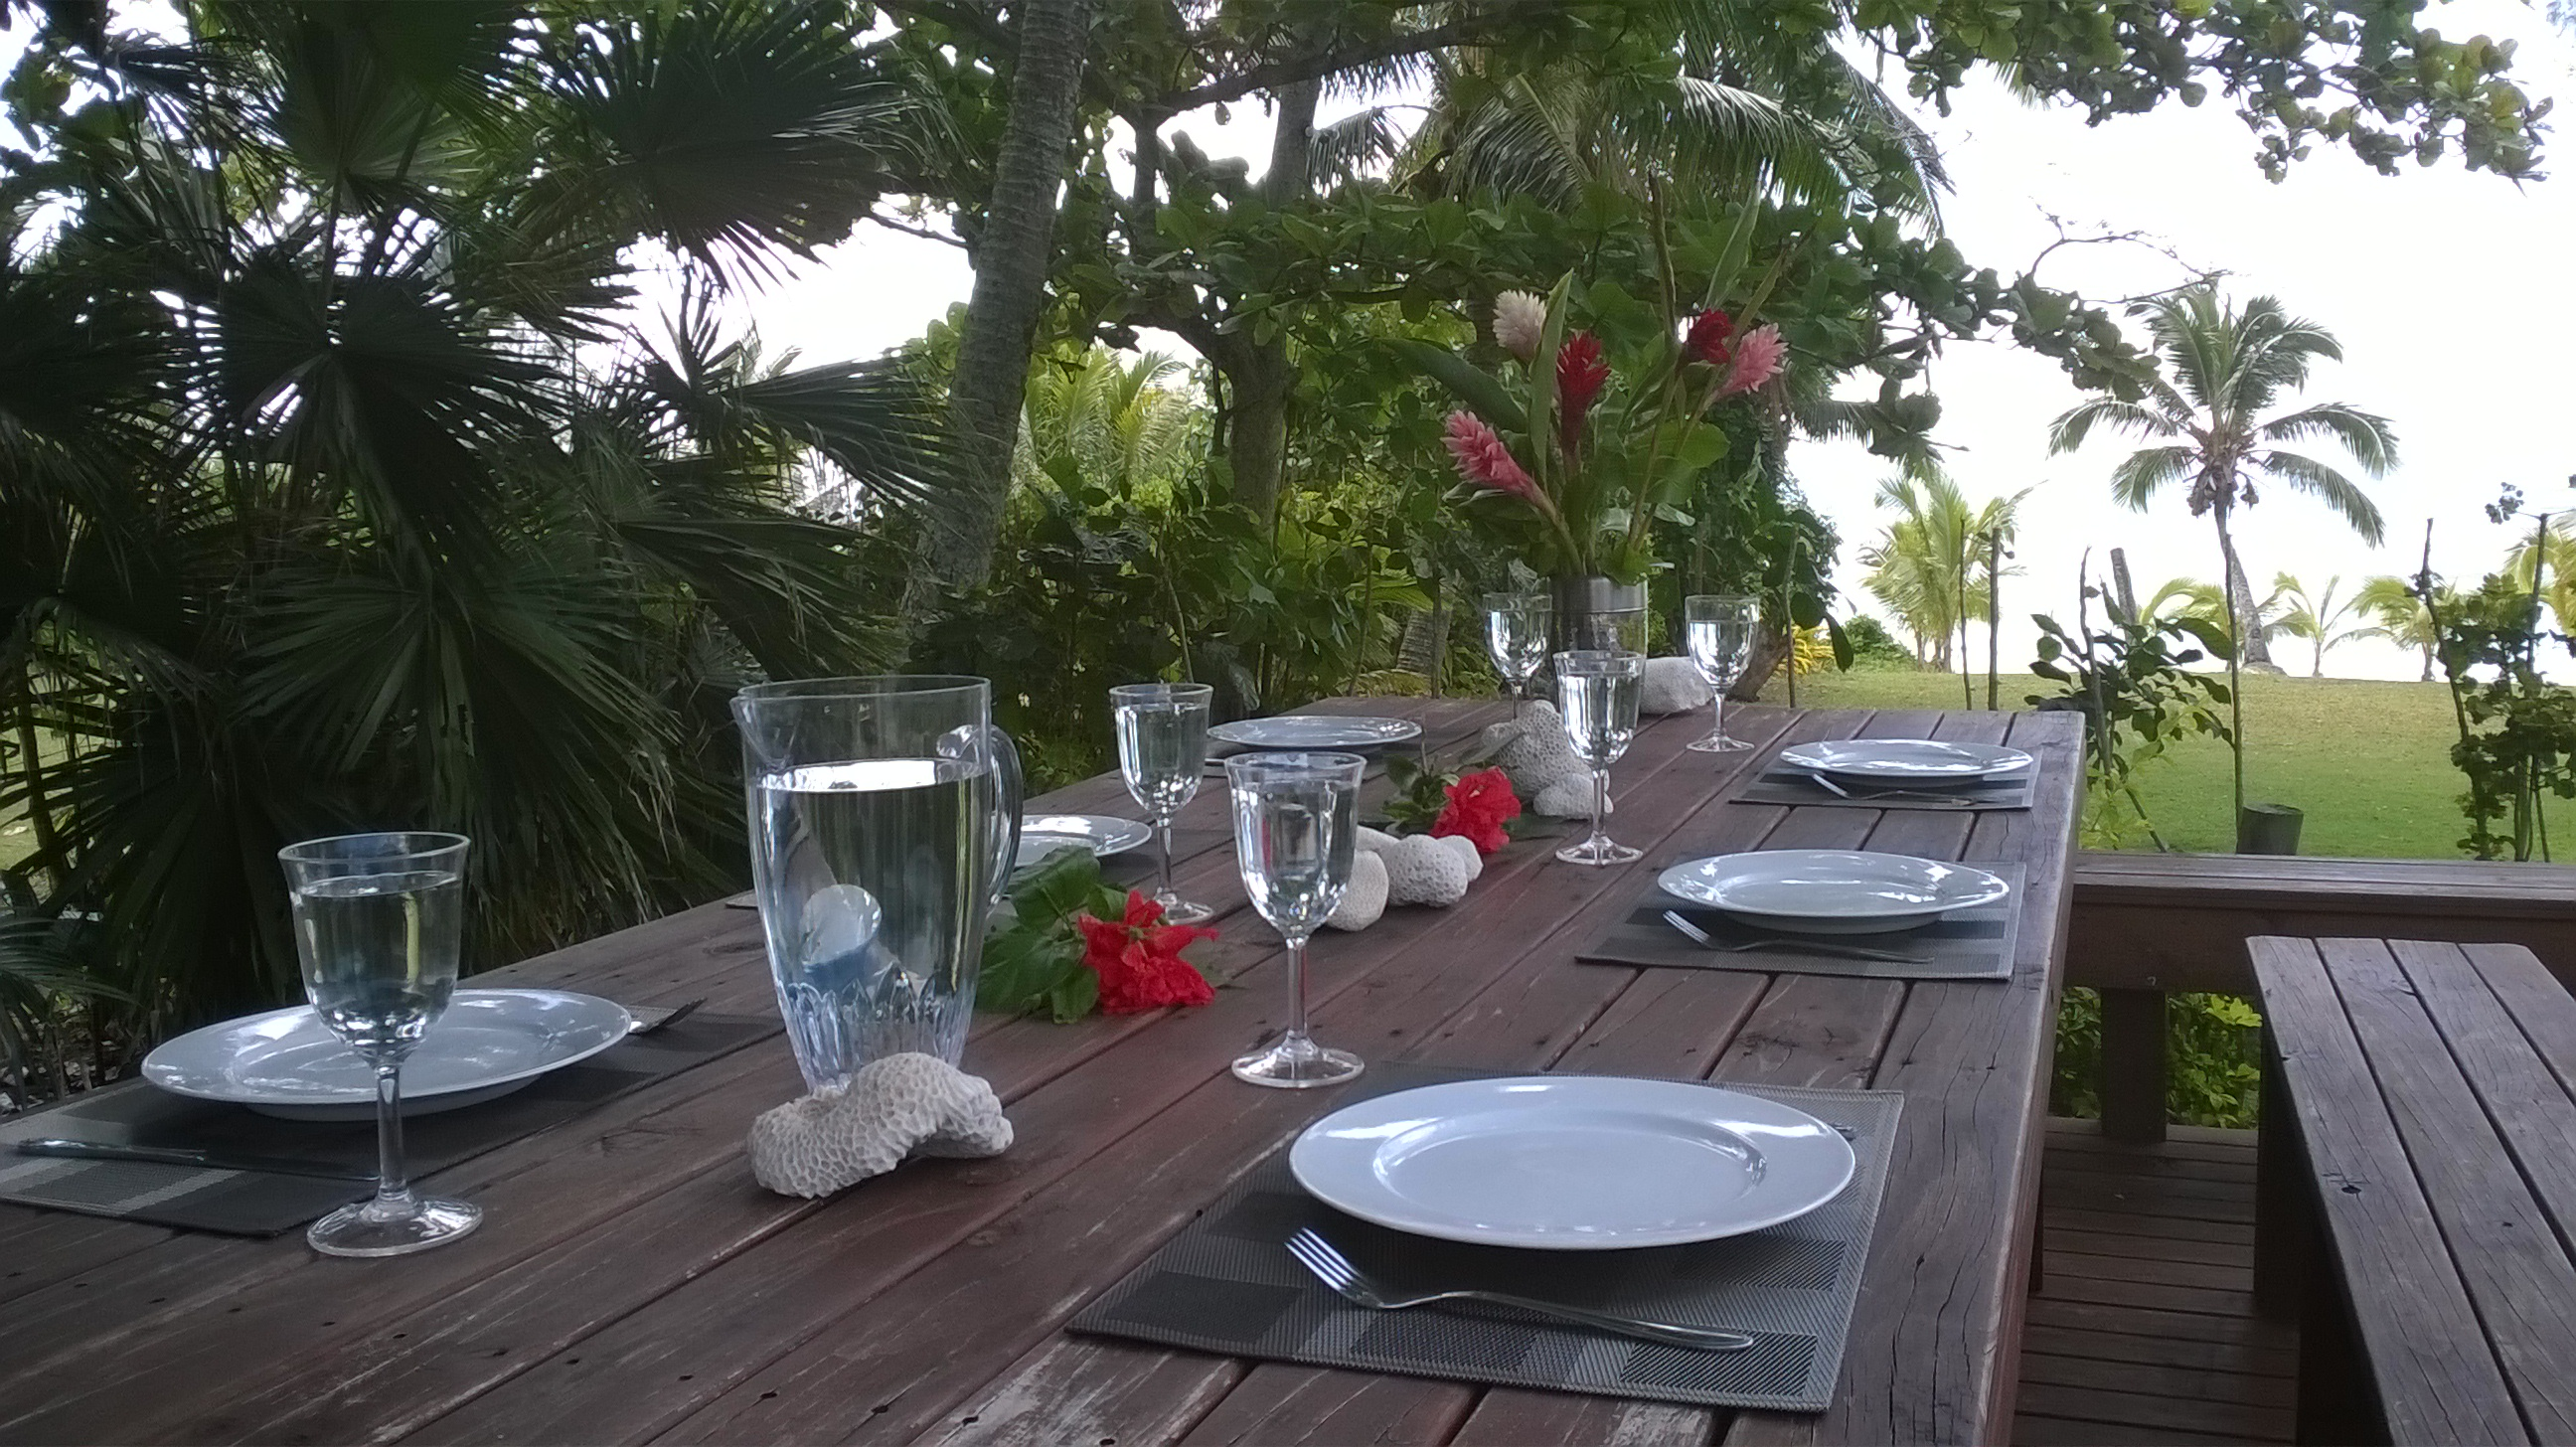 Dinner on a tropical island